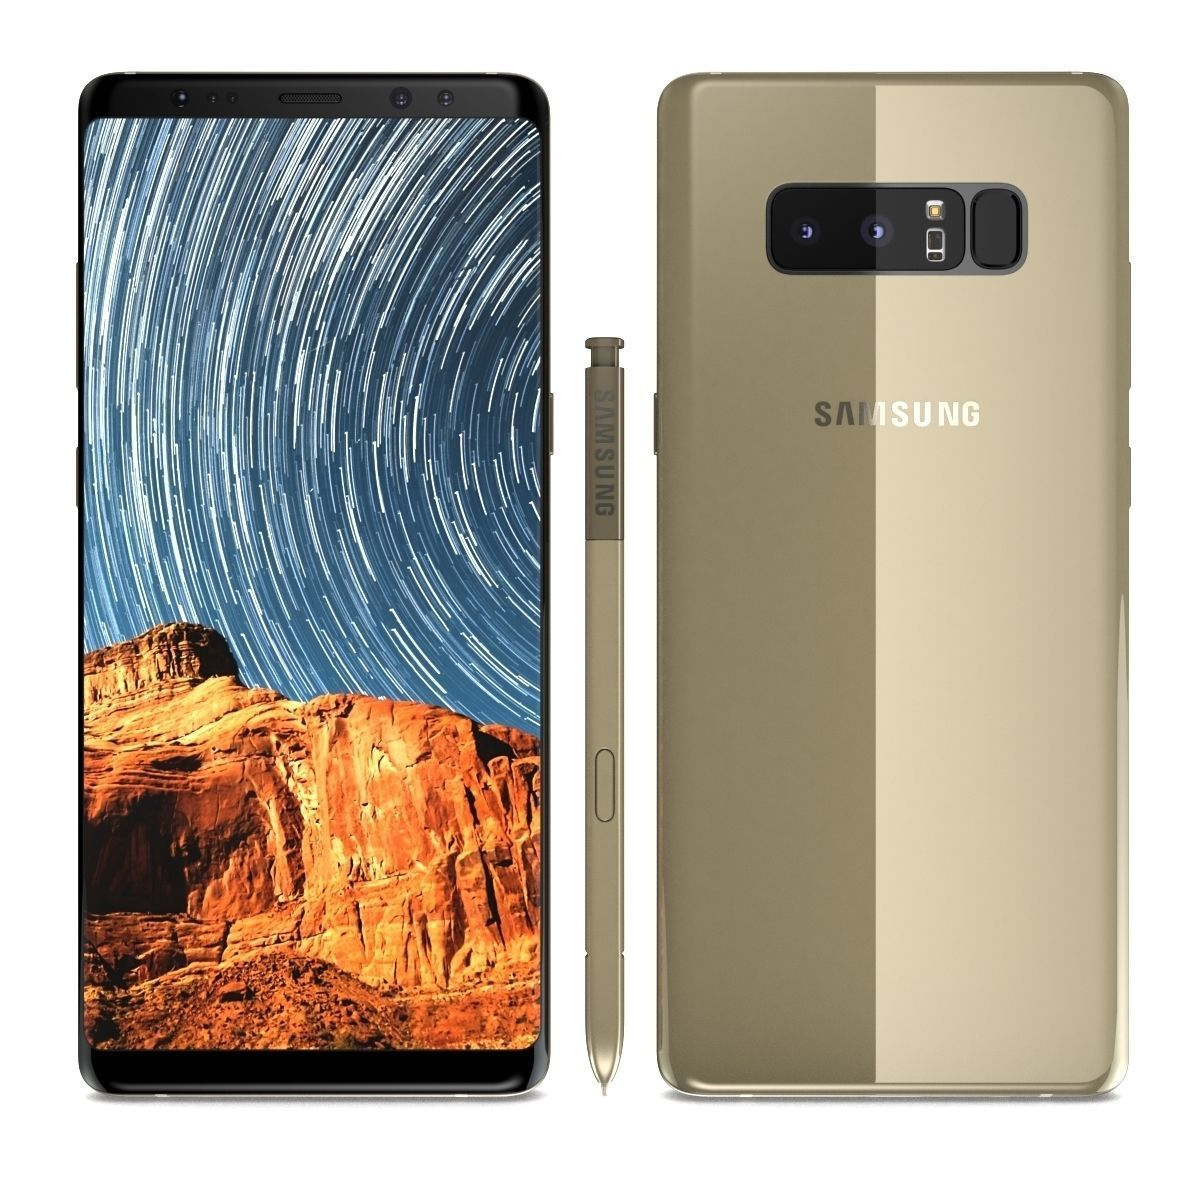 Samsung Galaxy Note 8 64gb Preowned